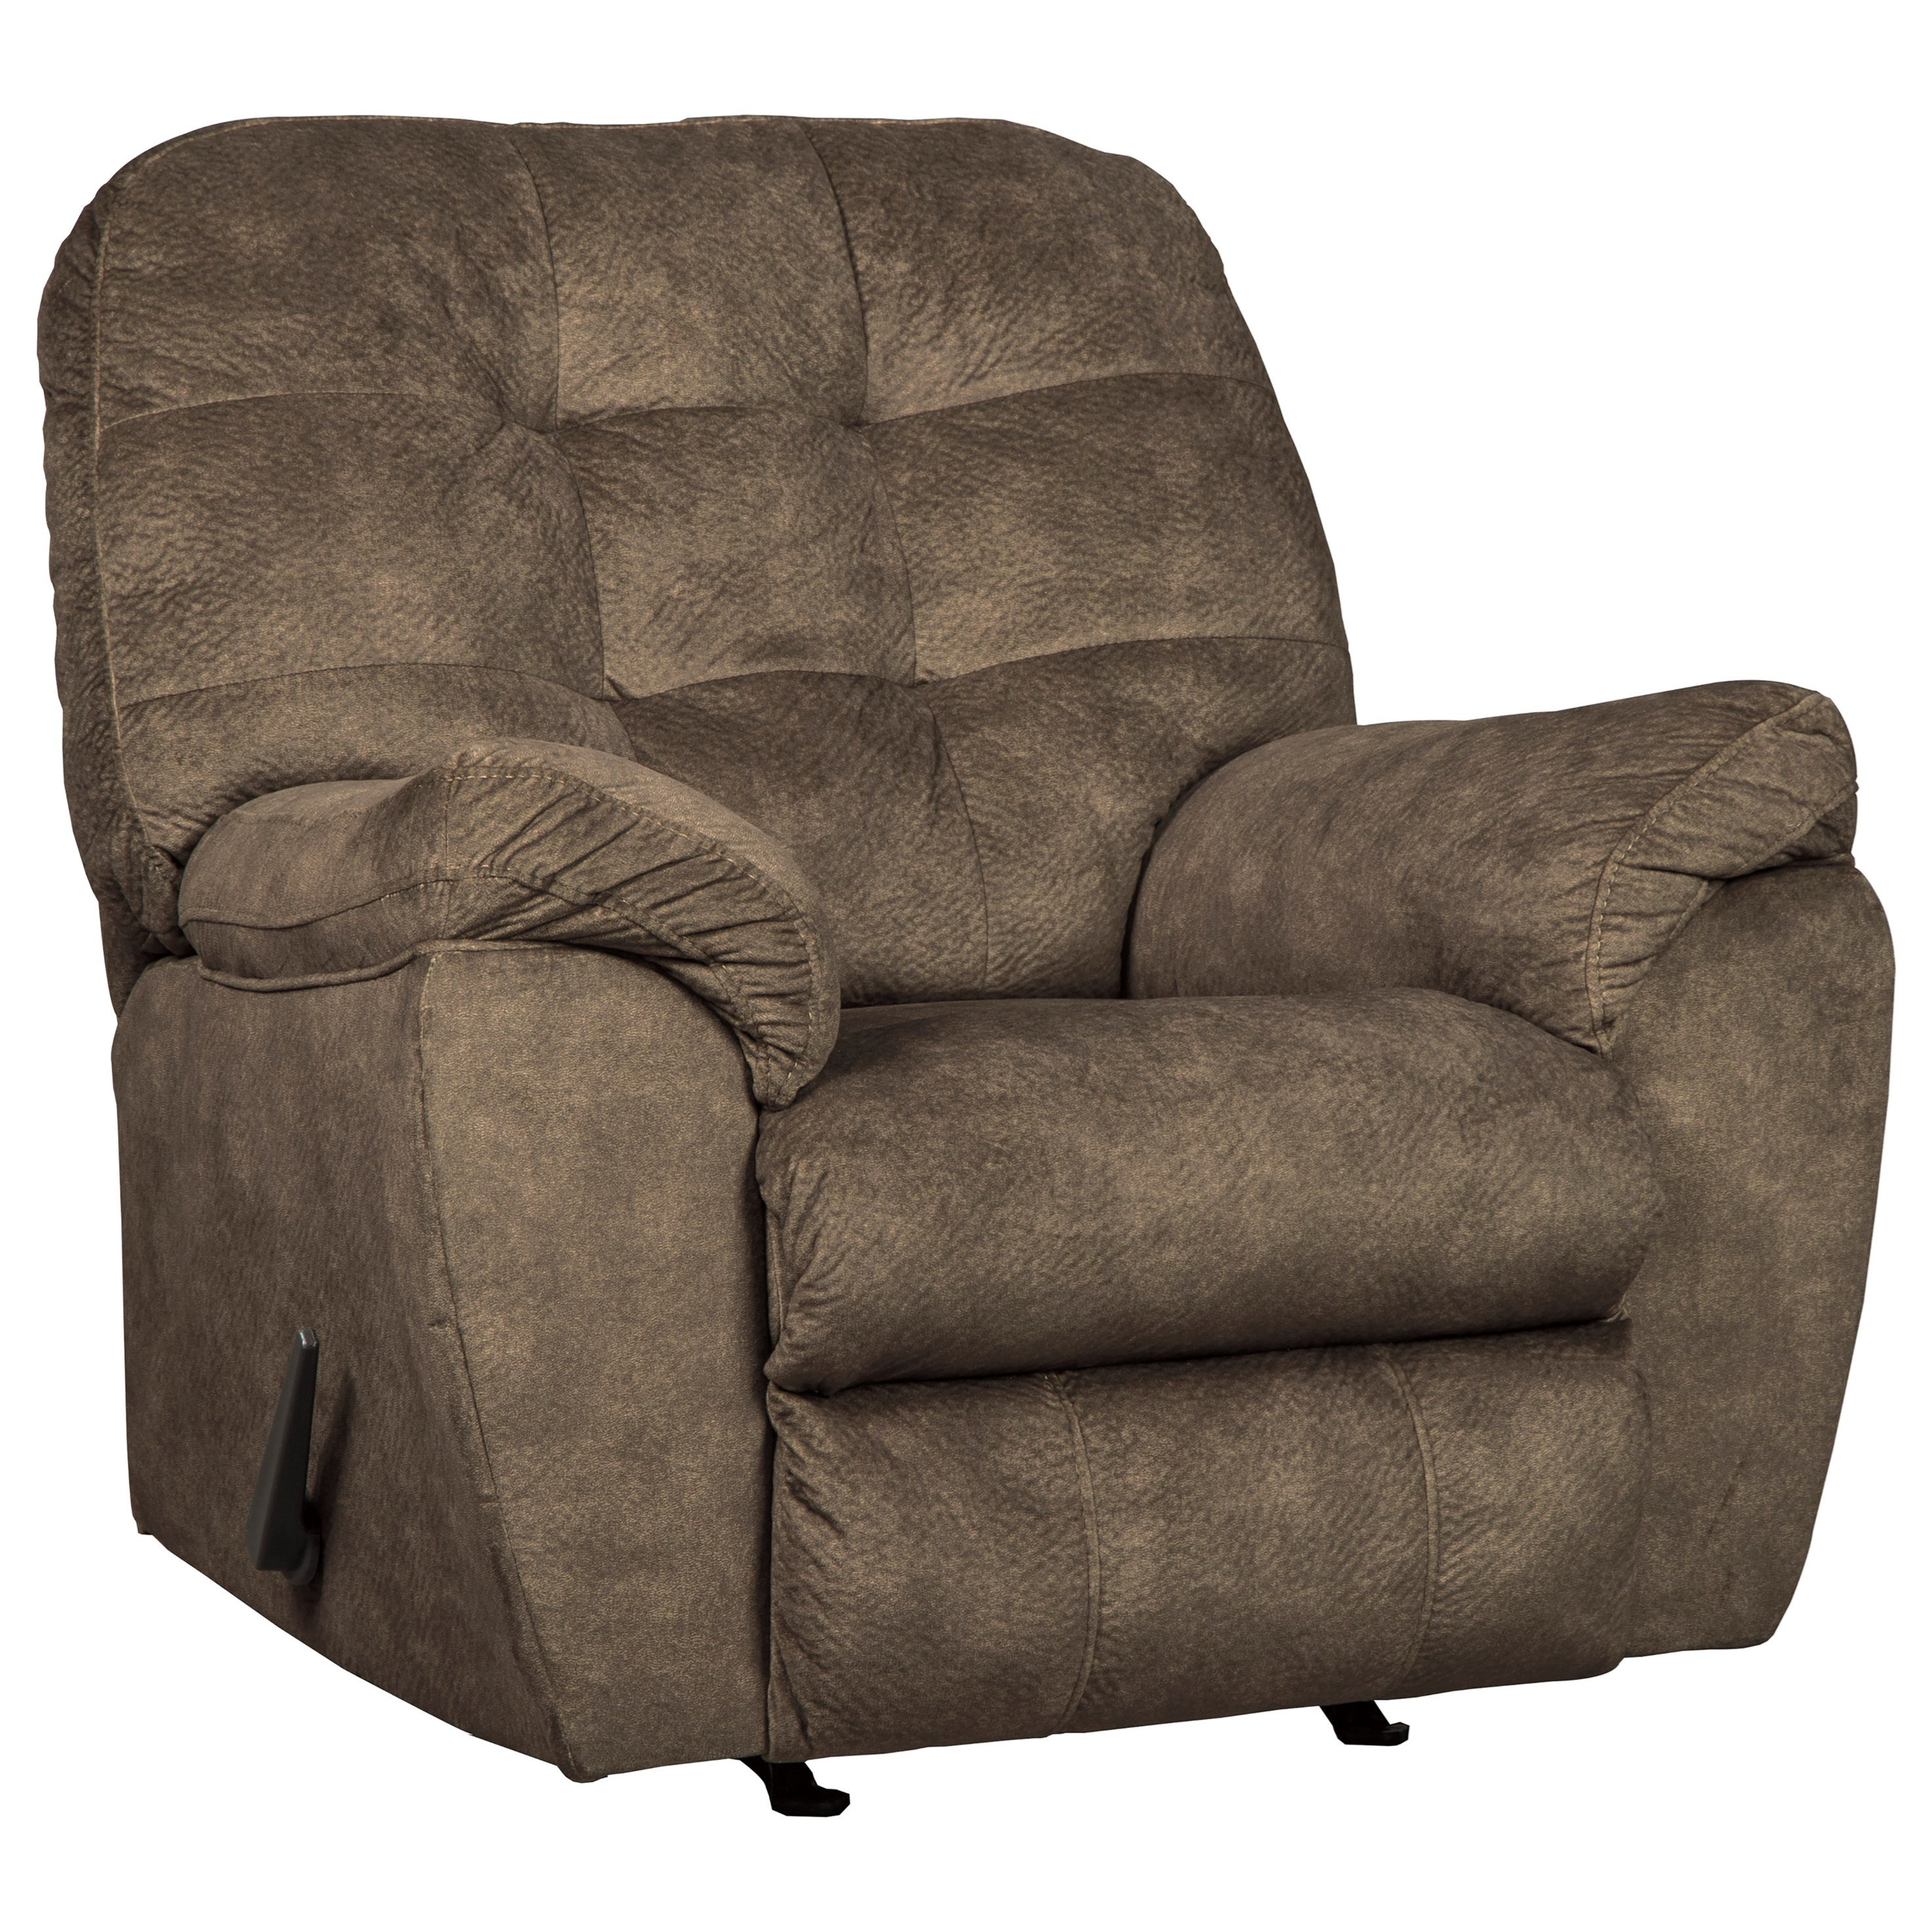 Recliner Pillow Accrington Casual Contemporary Rocker Recliner By Signature Design By Ashley At Beck S Furniture